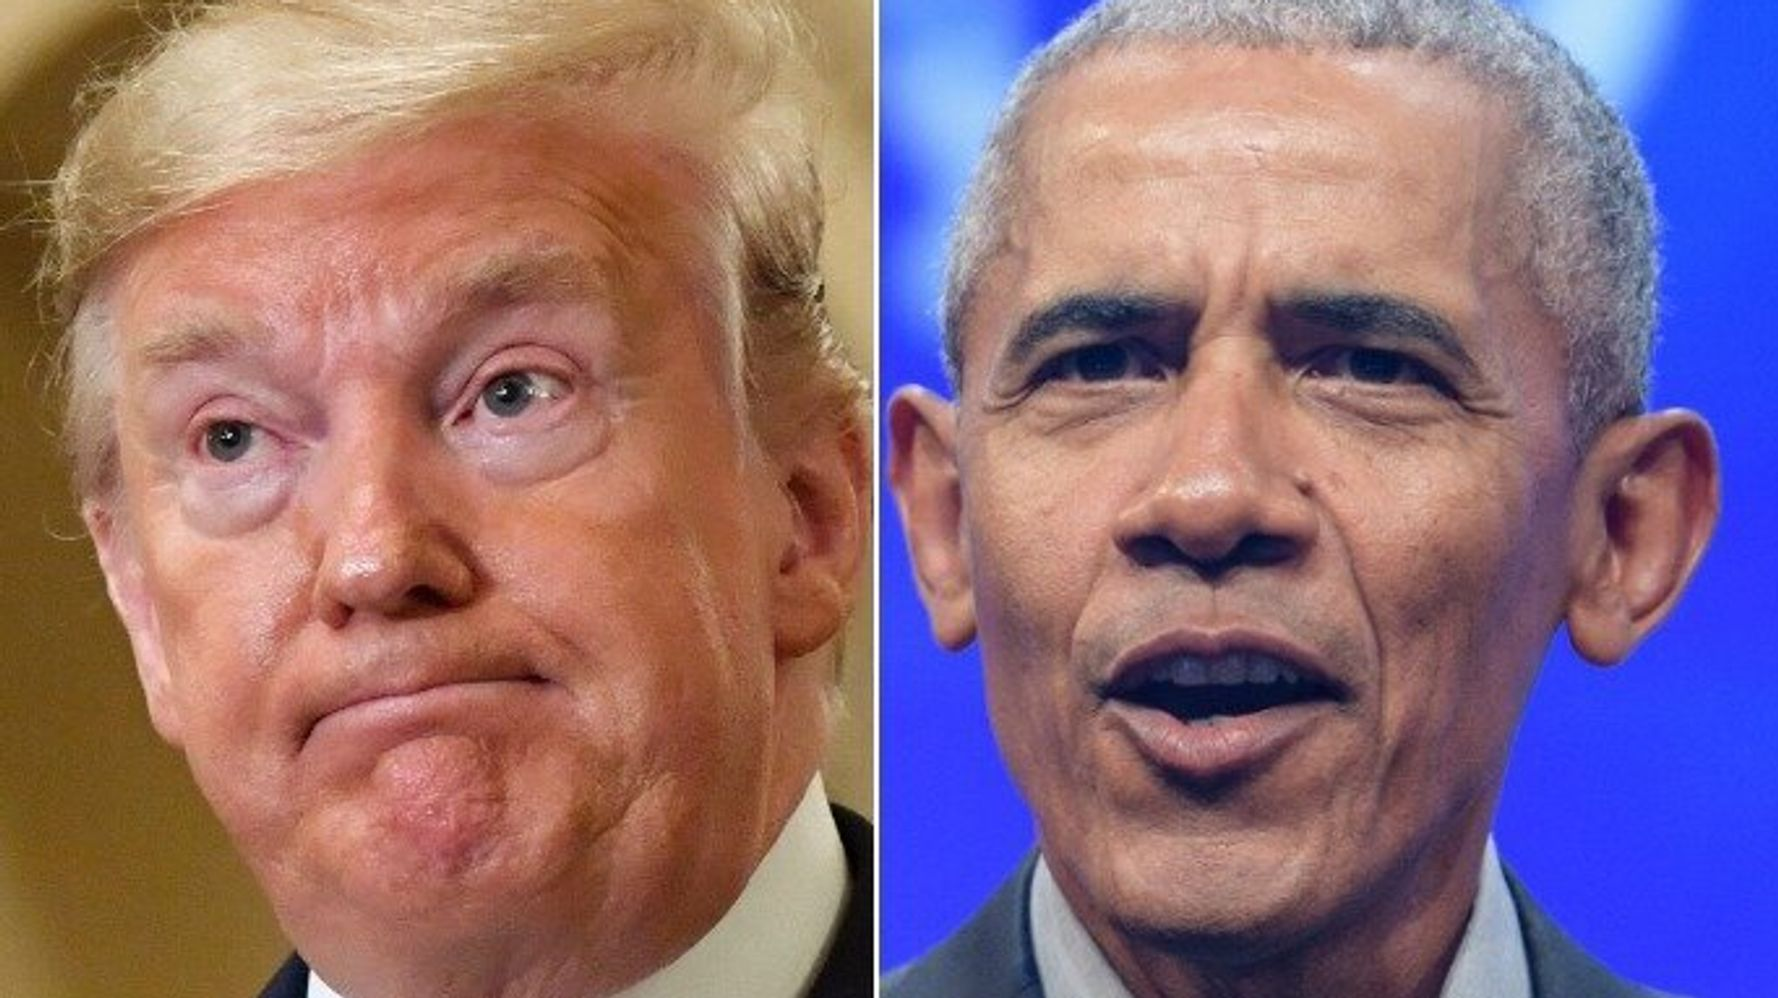 Trump's Old Attack On Obama Looks Really Awkward In Light Of New Allegations